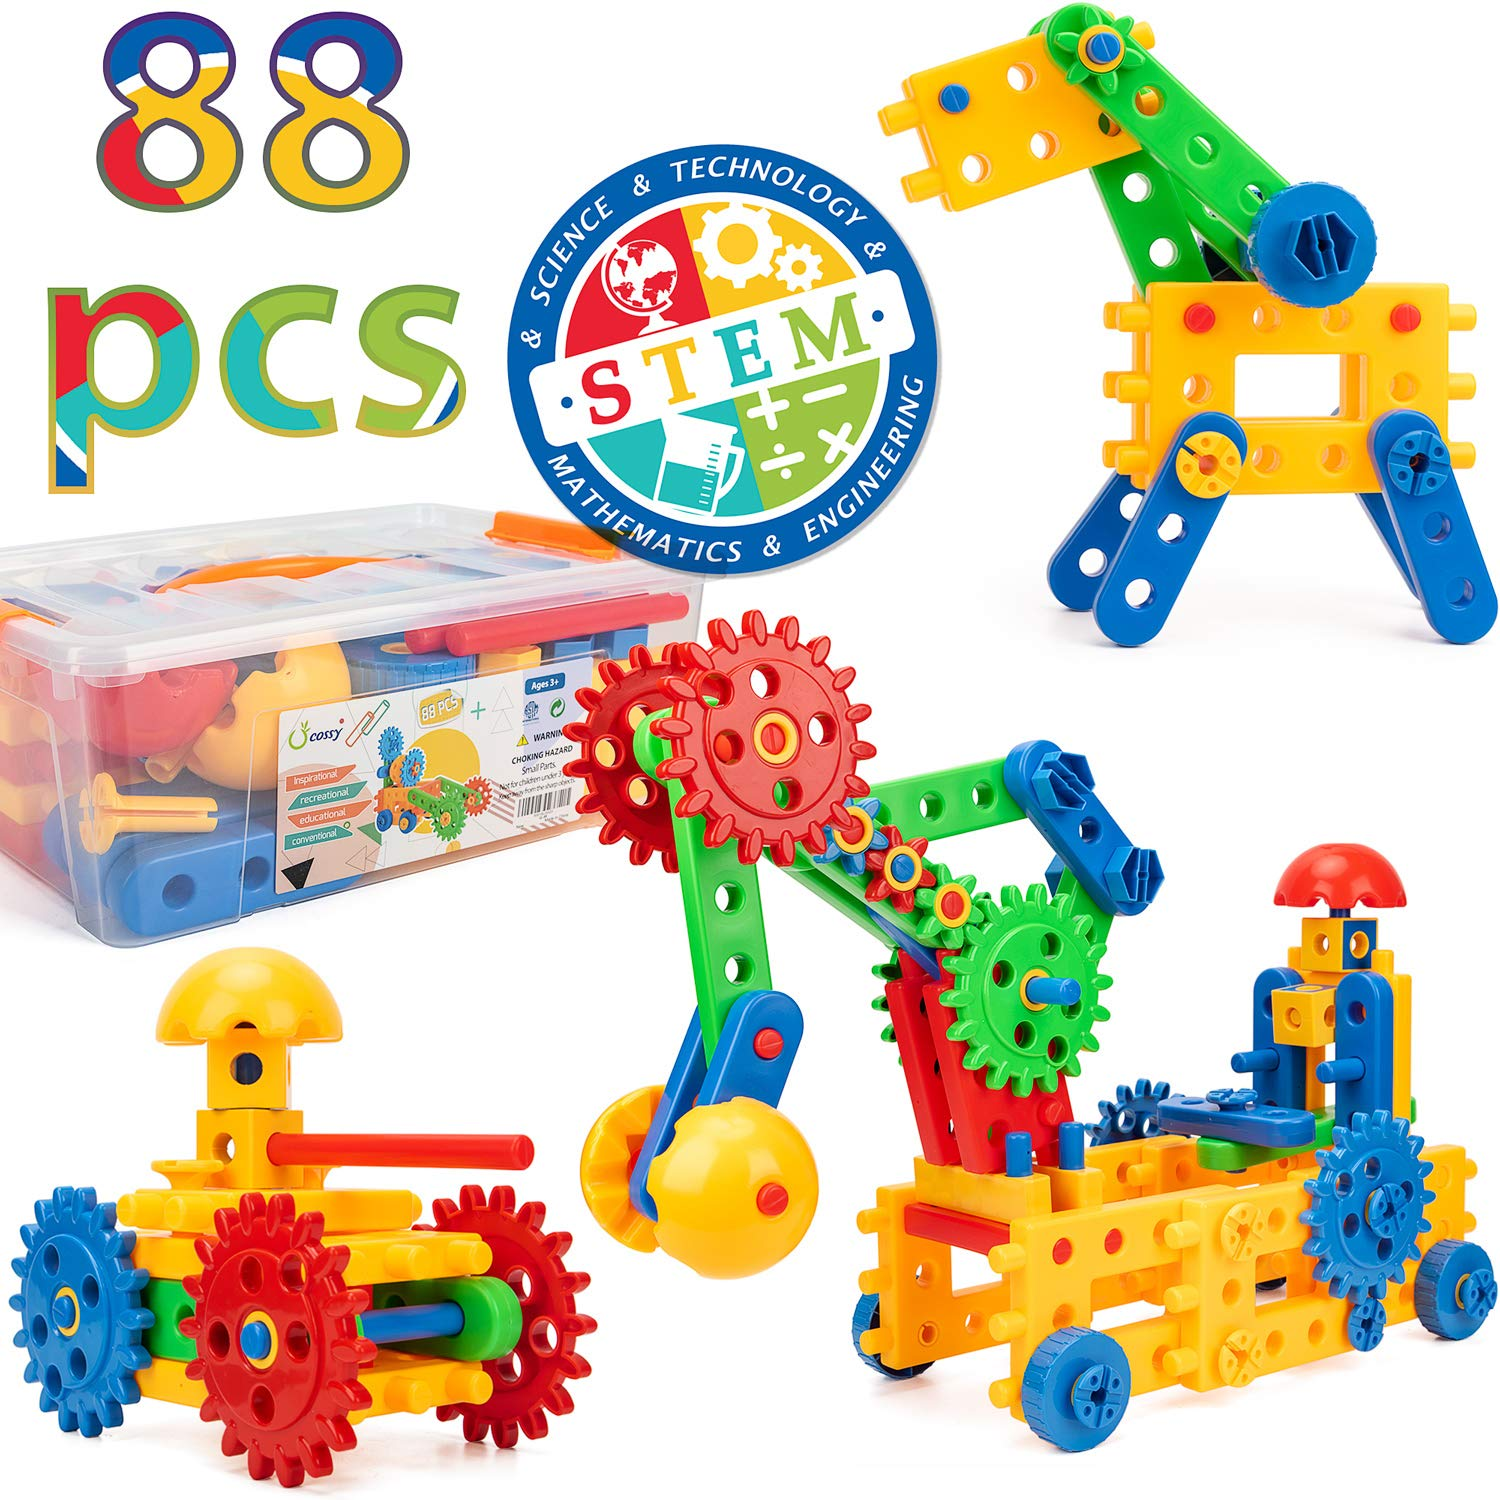 cossy Engineering Blocks for Kids 15 Shapes Super Fun Colorful Gears Building Set, 88 Pieces - STEM Educational Fun Toy Set for 3 Years and up, 3D Building Toys Set Gift for Boys & Girls